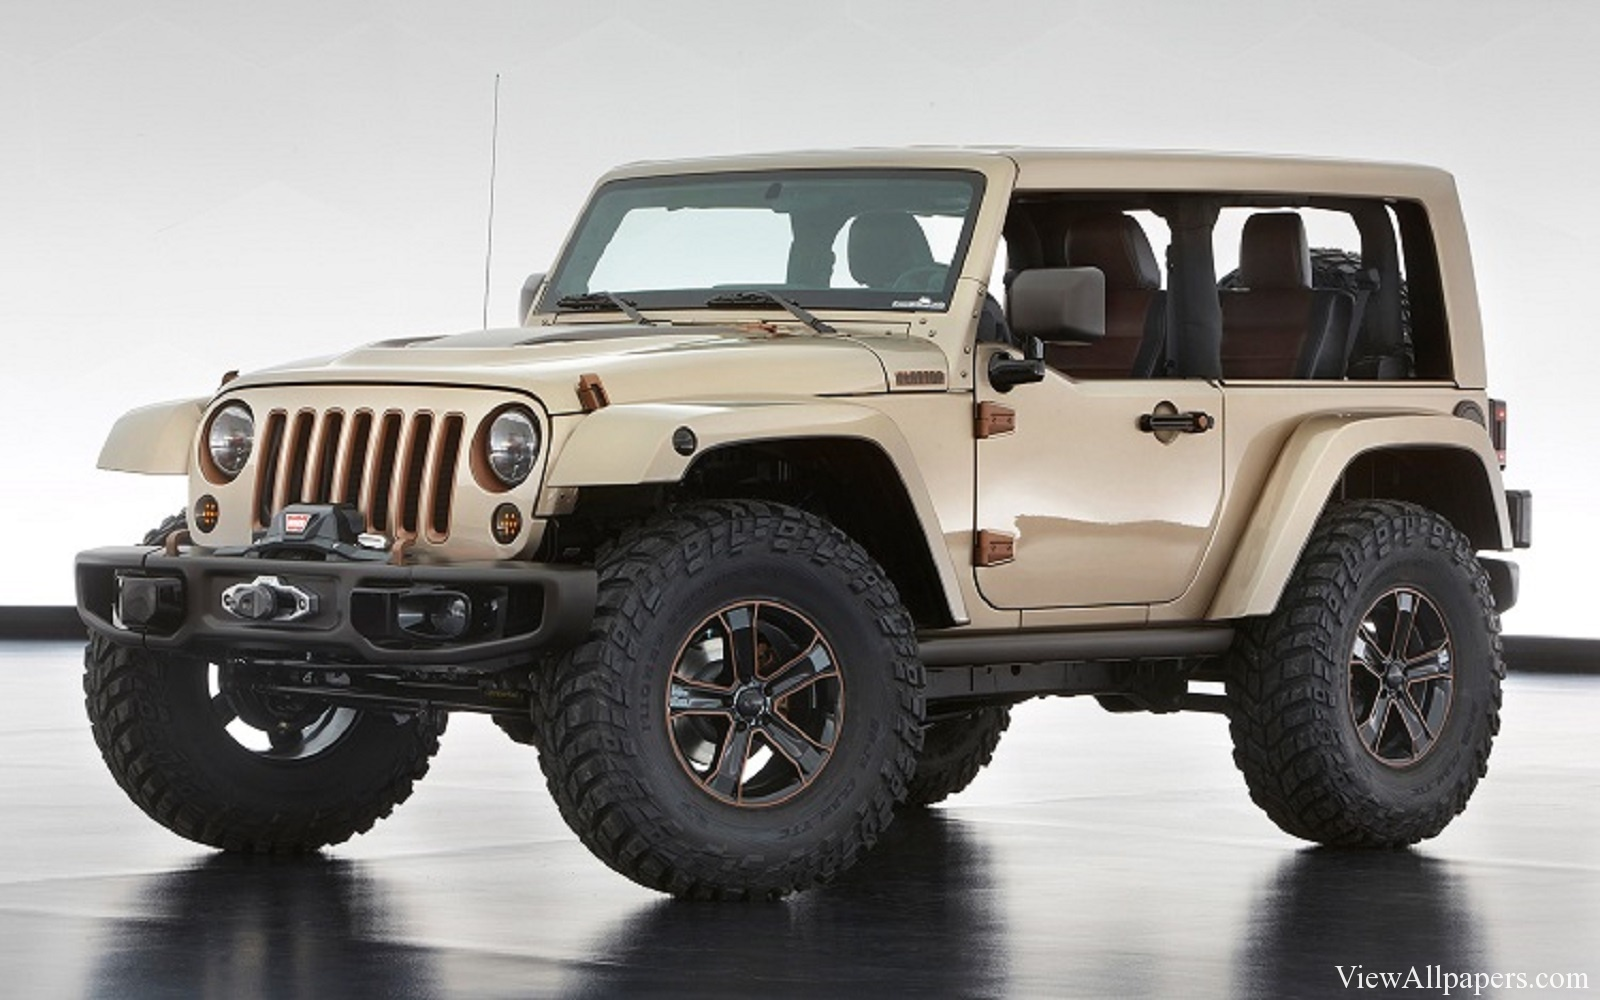 2017 Jeep Wrangler High Resolution Wallpaper download 2017 Jeep 1600x1000